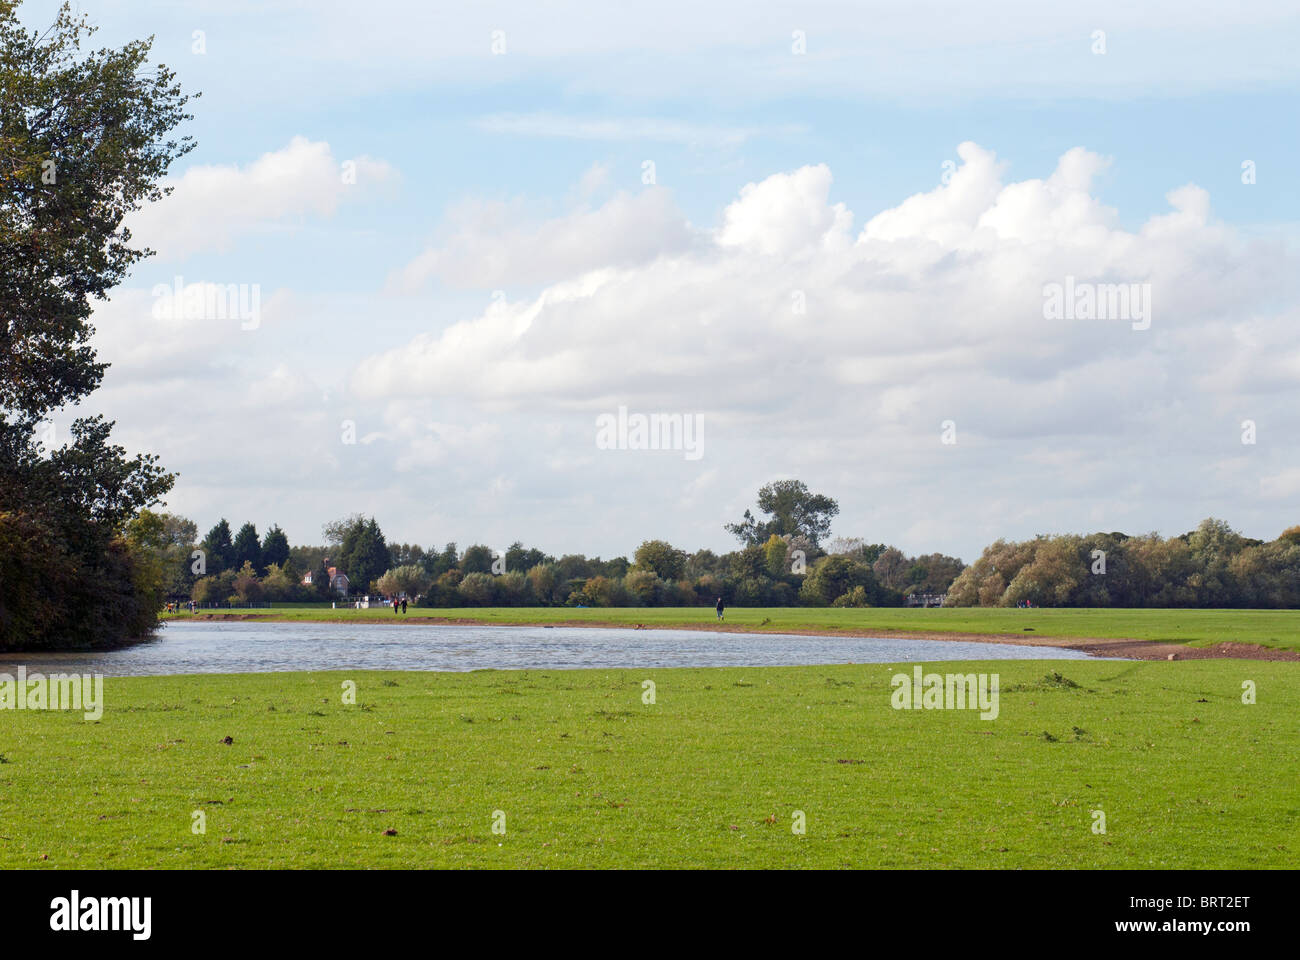 River Thames in Oxfordshire - Stock Image